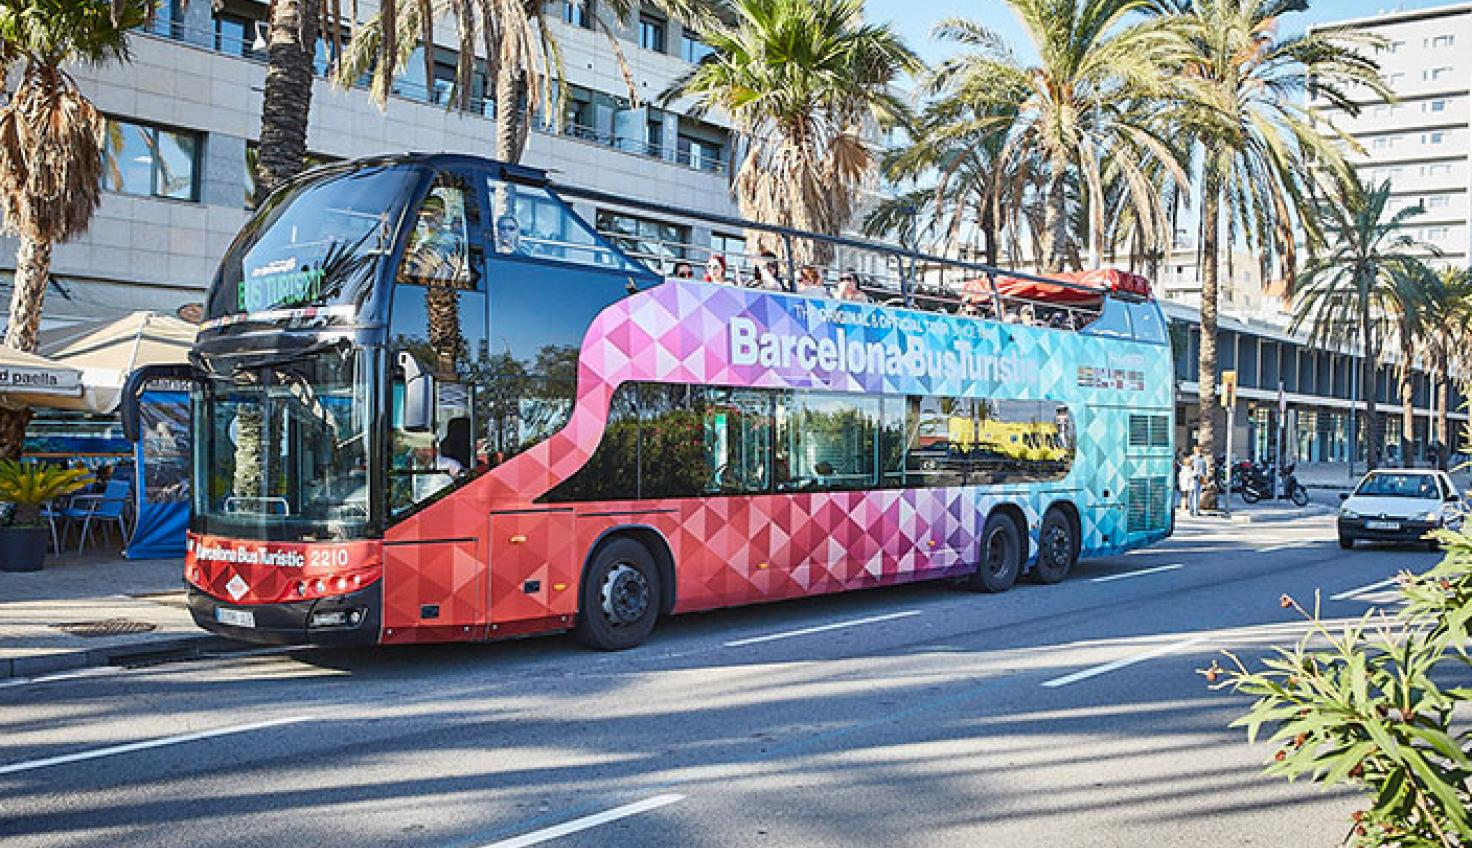 The Green Route of Barcelona Bus Turístic